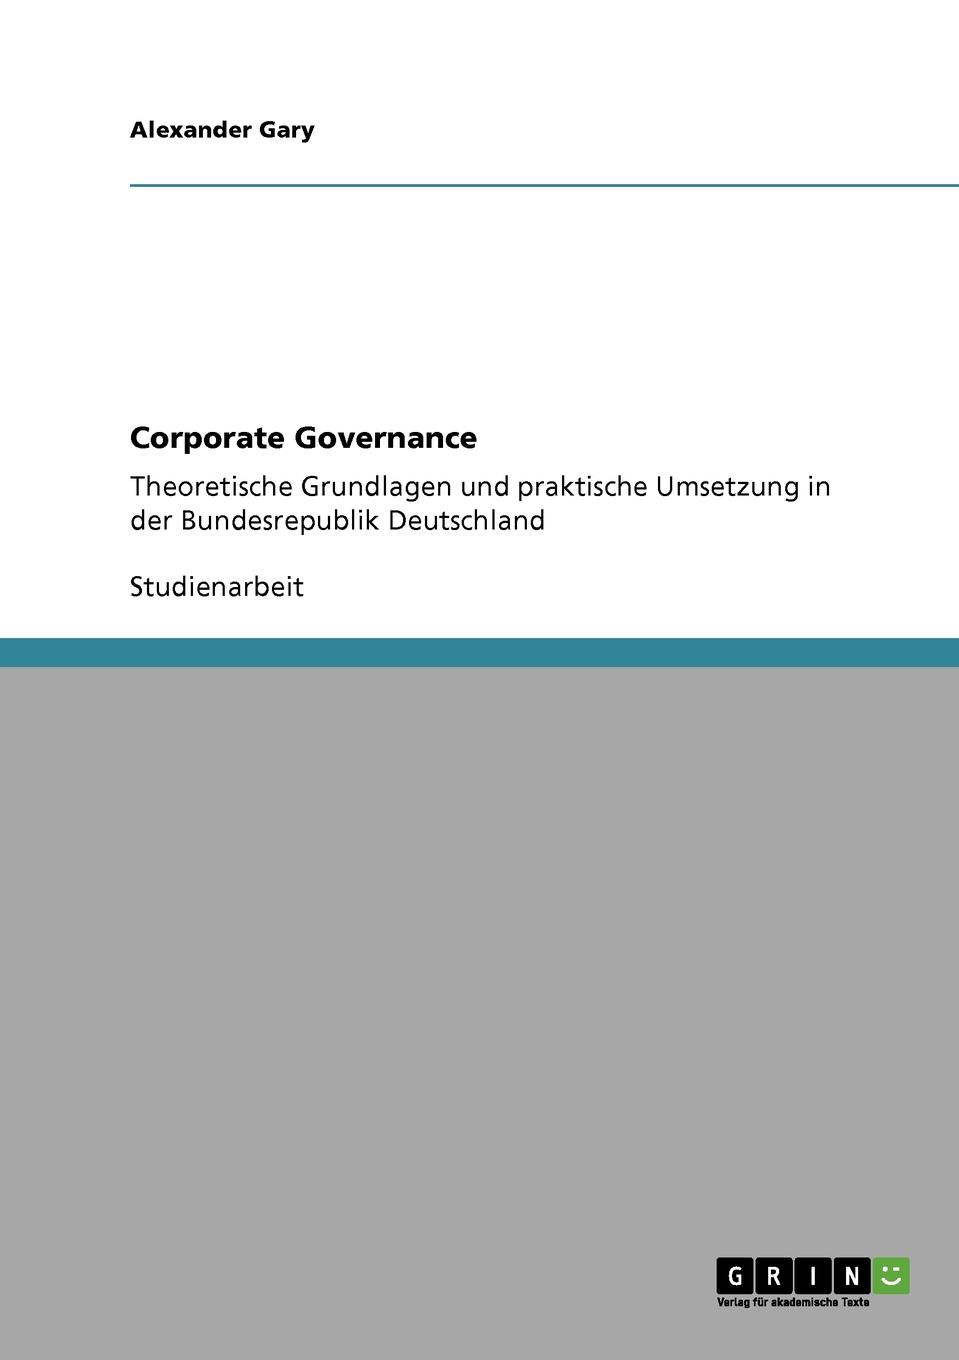 Alexander Gary Corporate Governance minow nell corporate governance